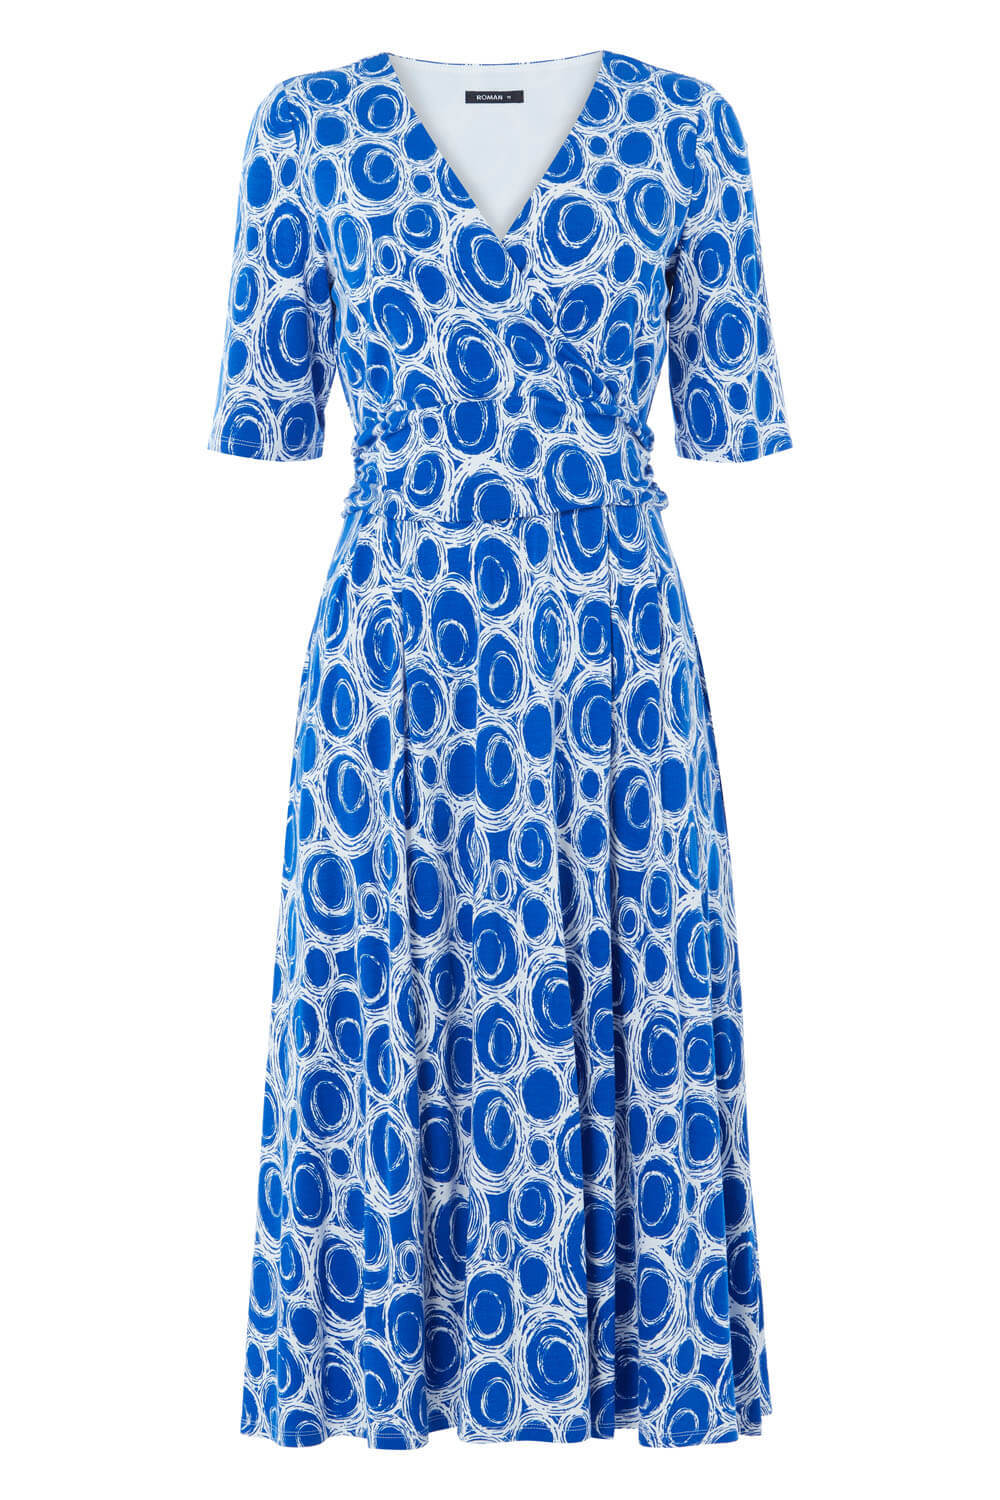 Roman-Originals-Short-Sleeve-Printed-Fit-and-Flare-Dress thumbnail 14